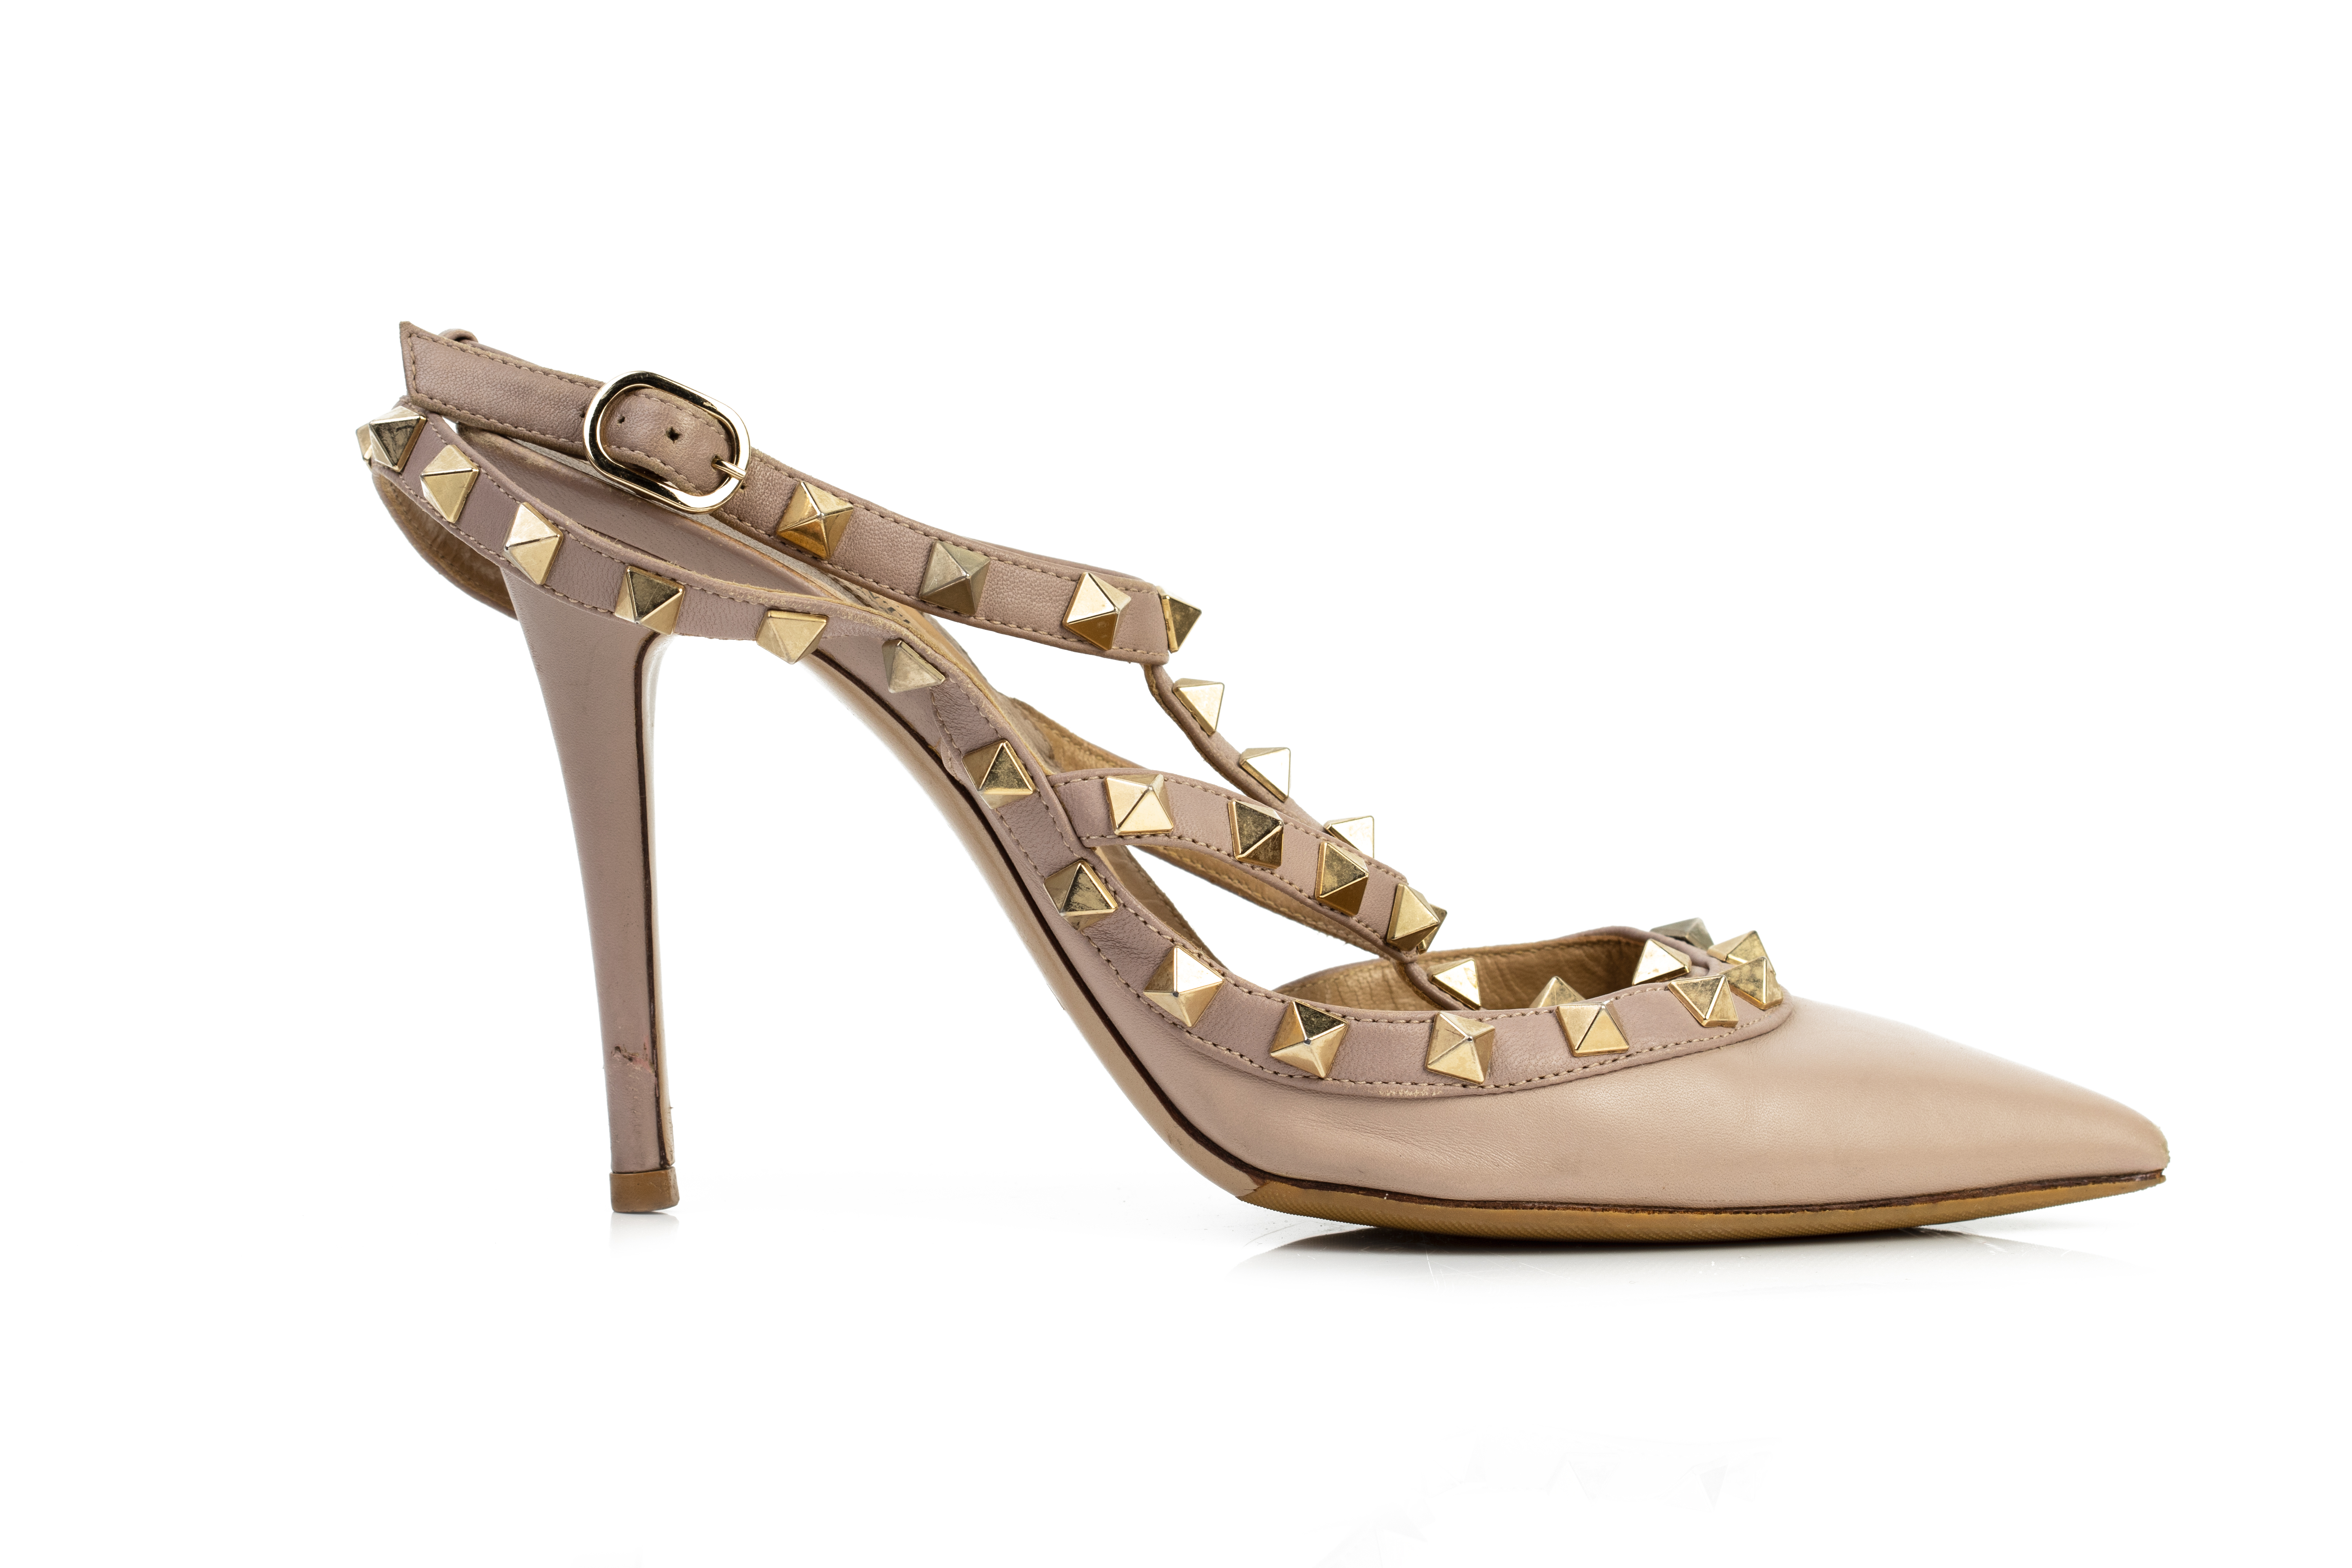 A PAIR OF VALENTINO ROCKSTUD ANKLE STRAP NEUTRAL PUMPS EU36 - Image 2 of 4